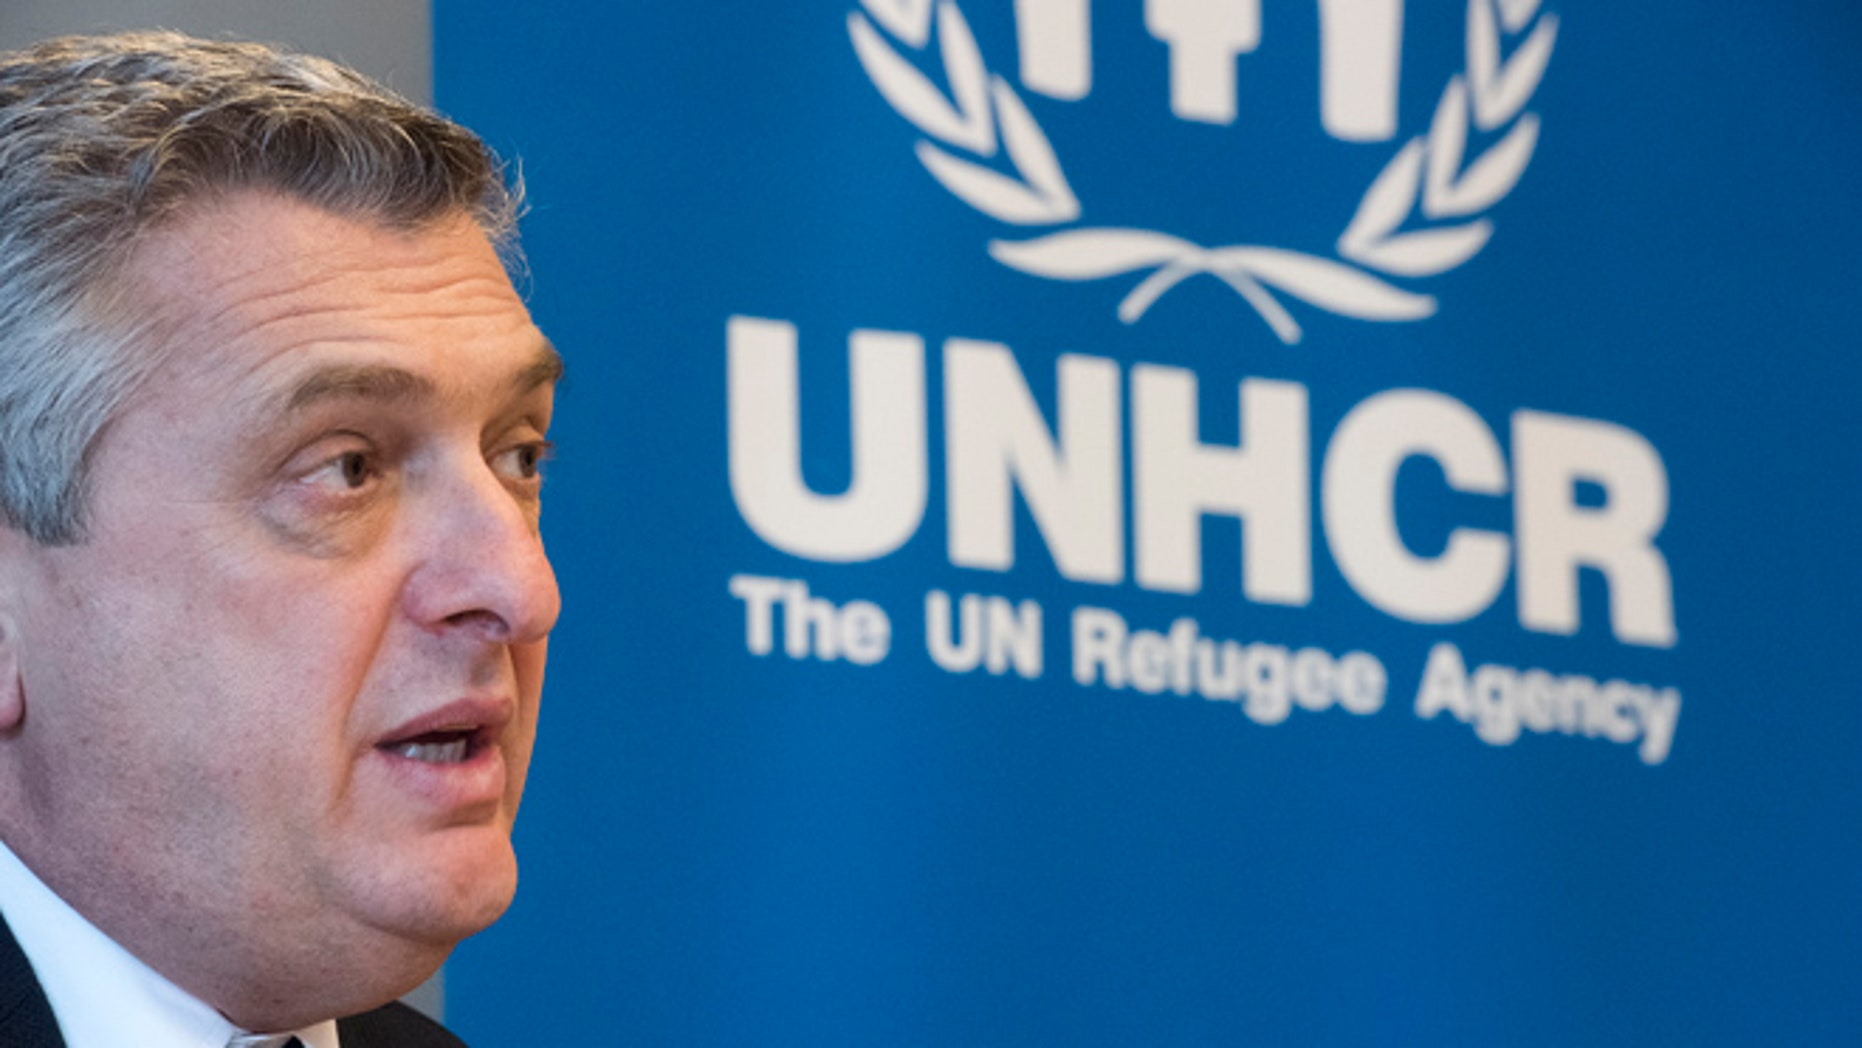 United Nations High Commissioner for Refugees Filippo Grandi speaks about the migration crisis during a press meeting at the UNHCR office in Stockholm, Sweden, April 06, 2016.